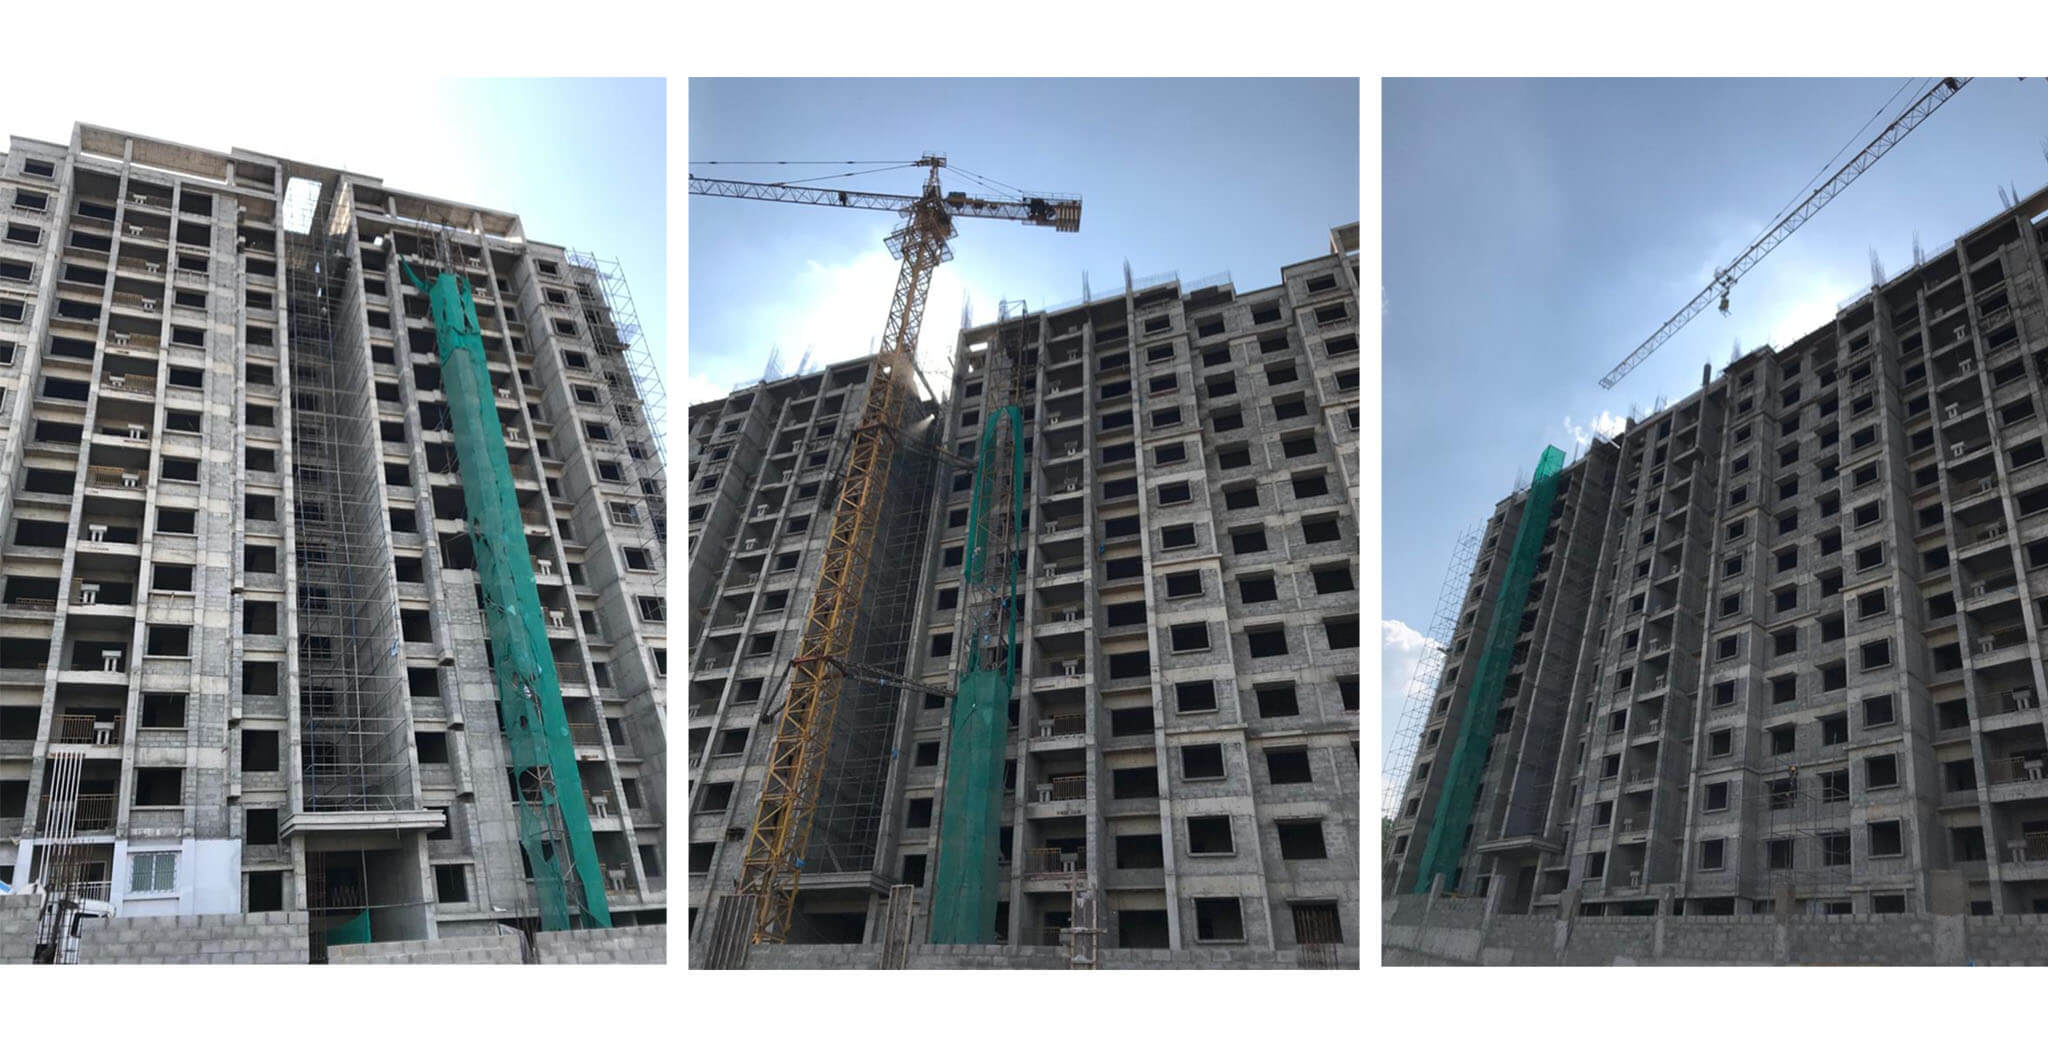 Oct 2020 - Towers E, F & G: Structure completed. External & internal finishing work-in-progress